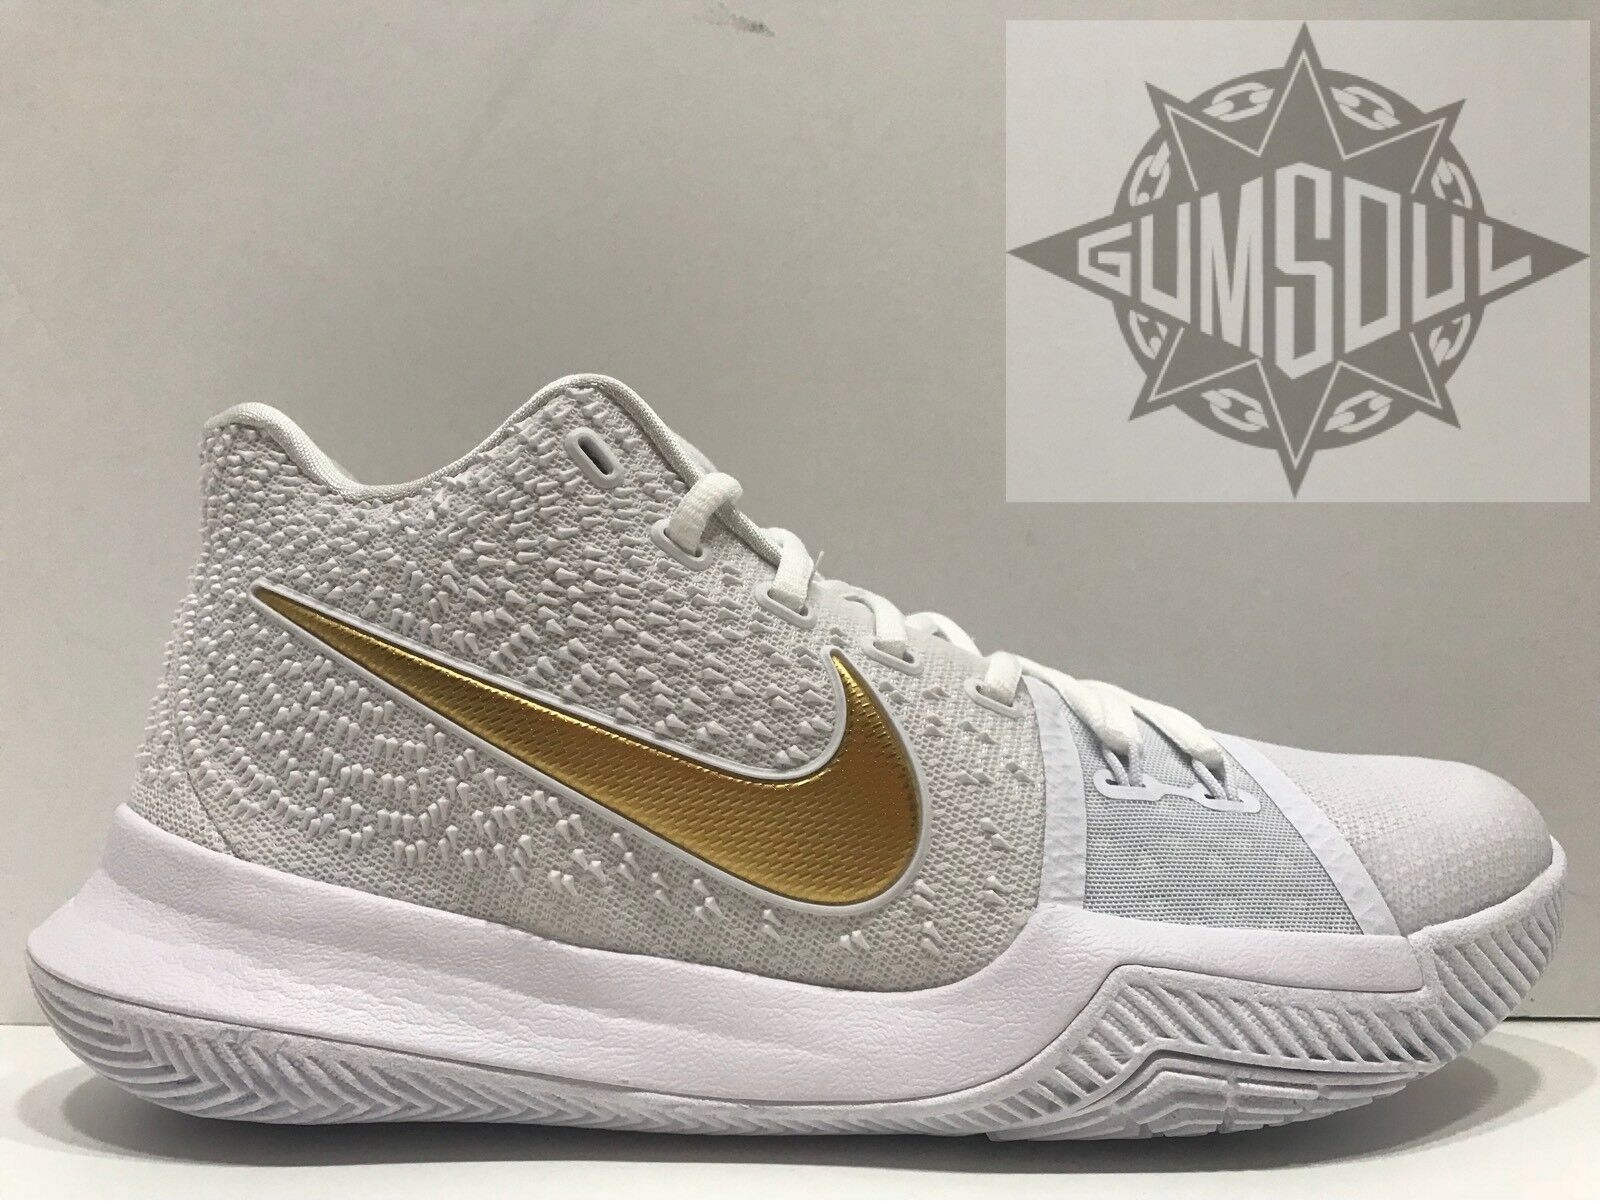 NIKE KYRIE 3 FINALS WHITE GOLD MULTI COLOR IRVING 852395 902 sz 9.5